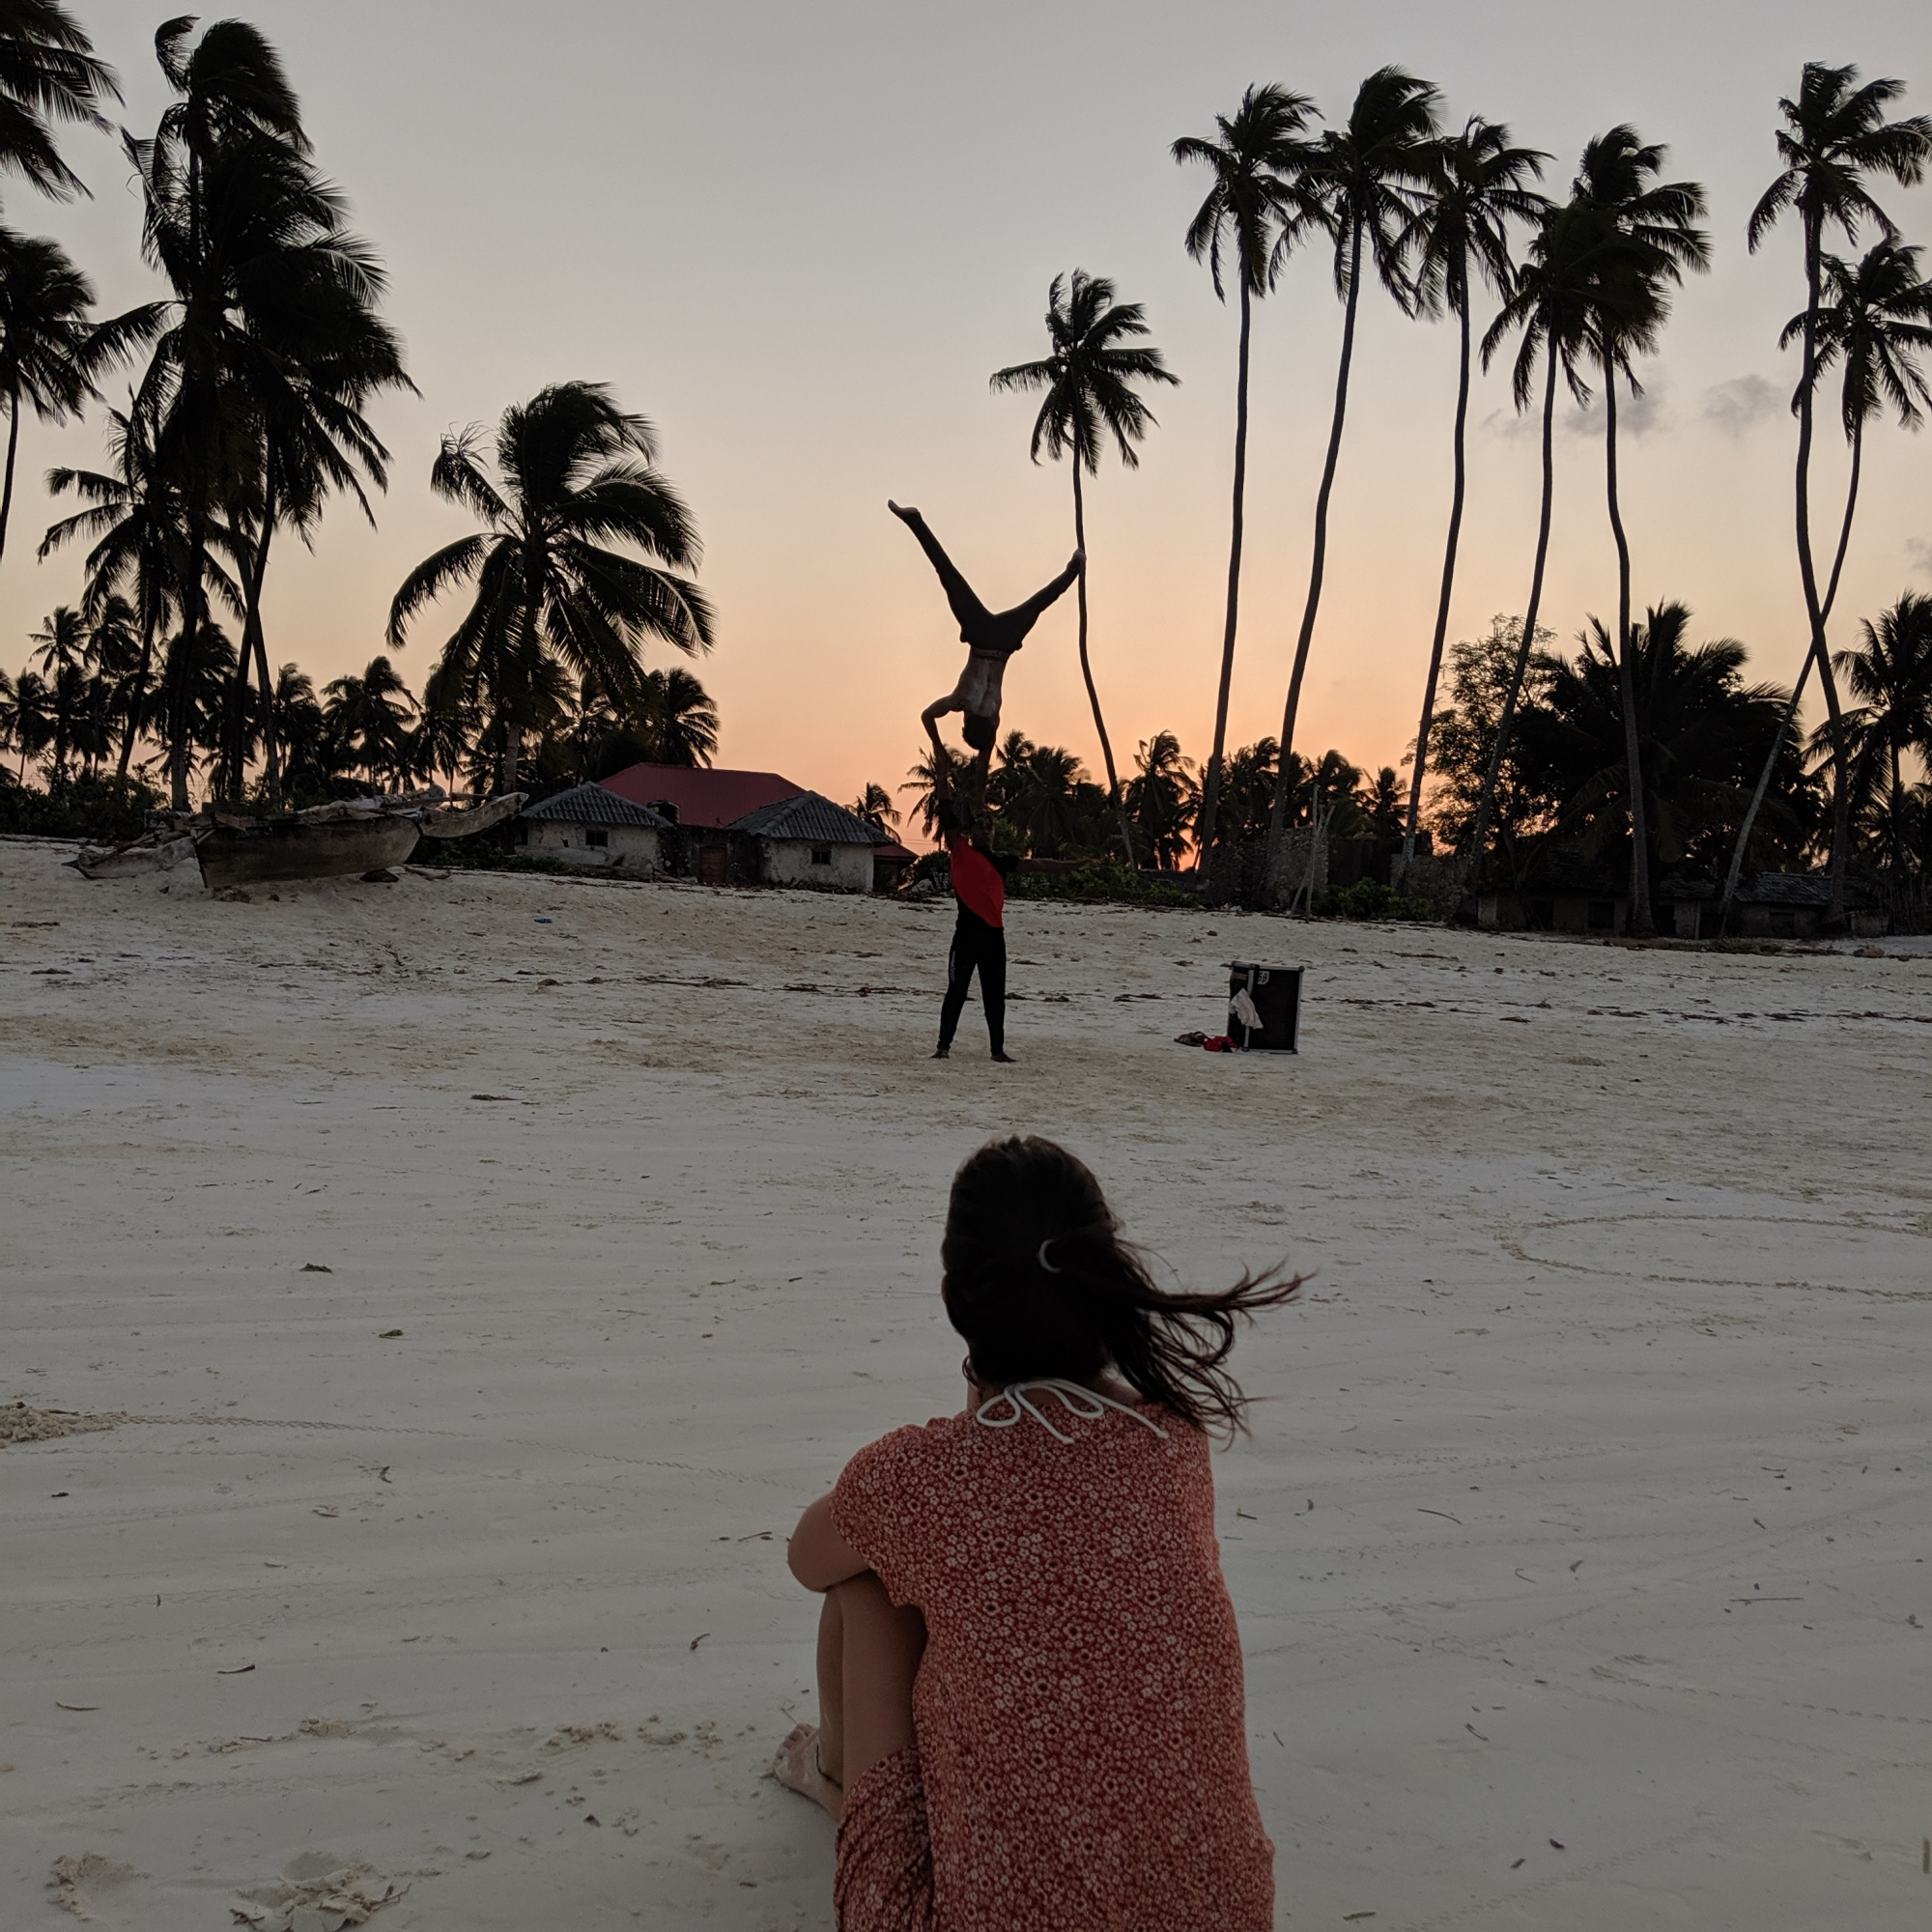 Watching people training an acrobatic routine at sunset on Jambiani Beach, Zanzibar